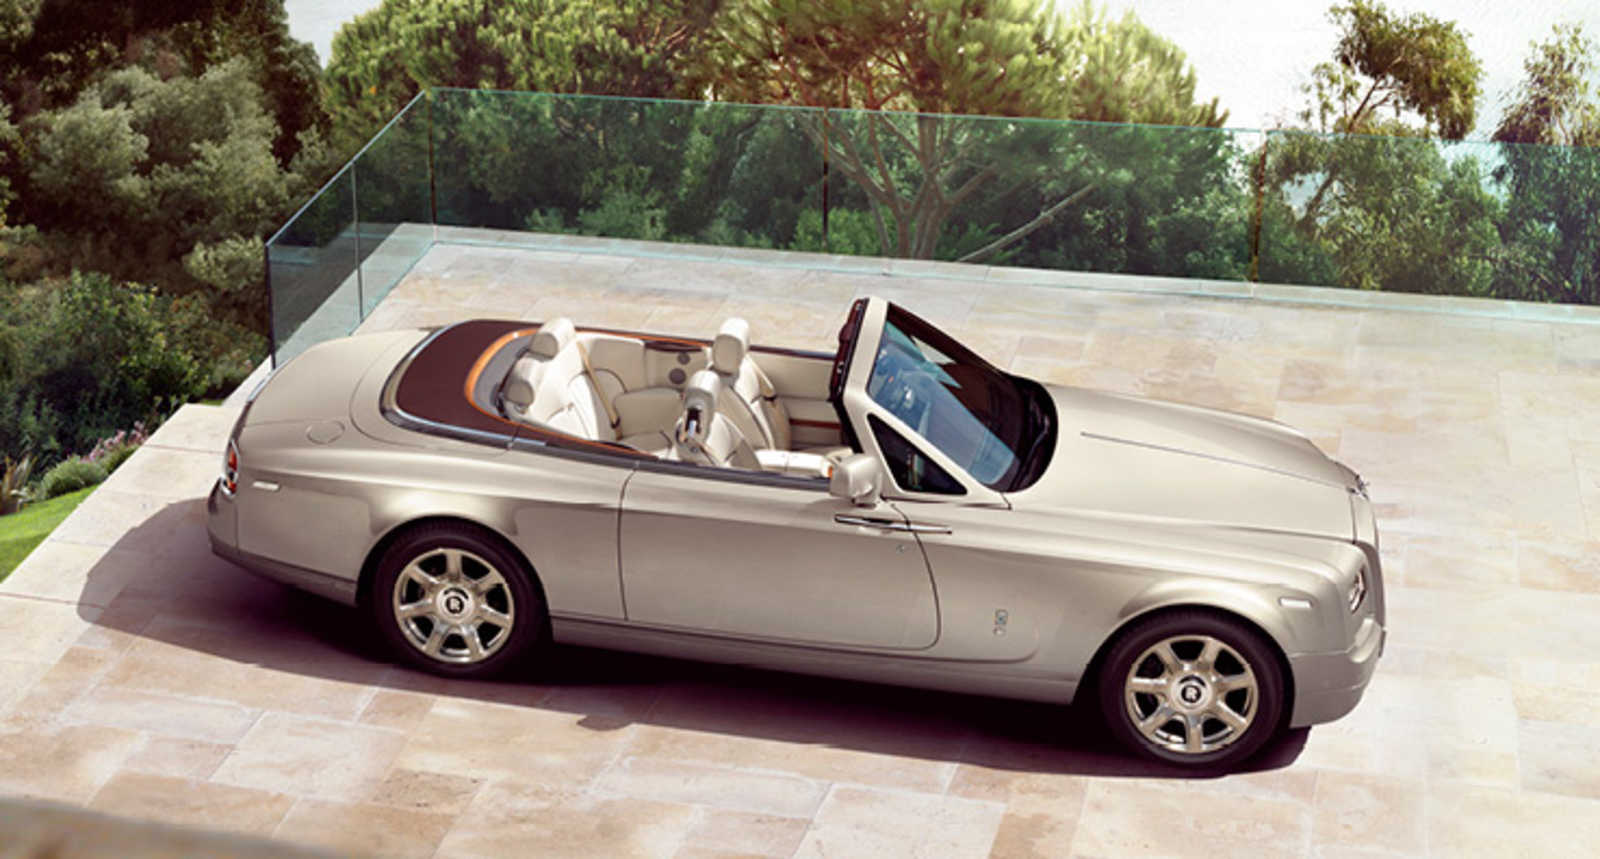 Platz 8: Rolls-Royce Phantom Drophead Coupé